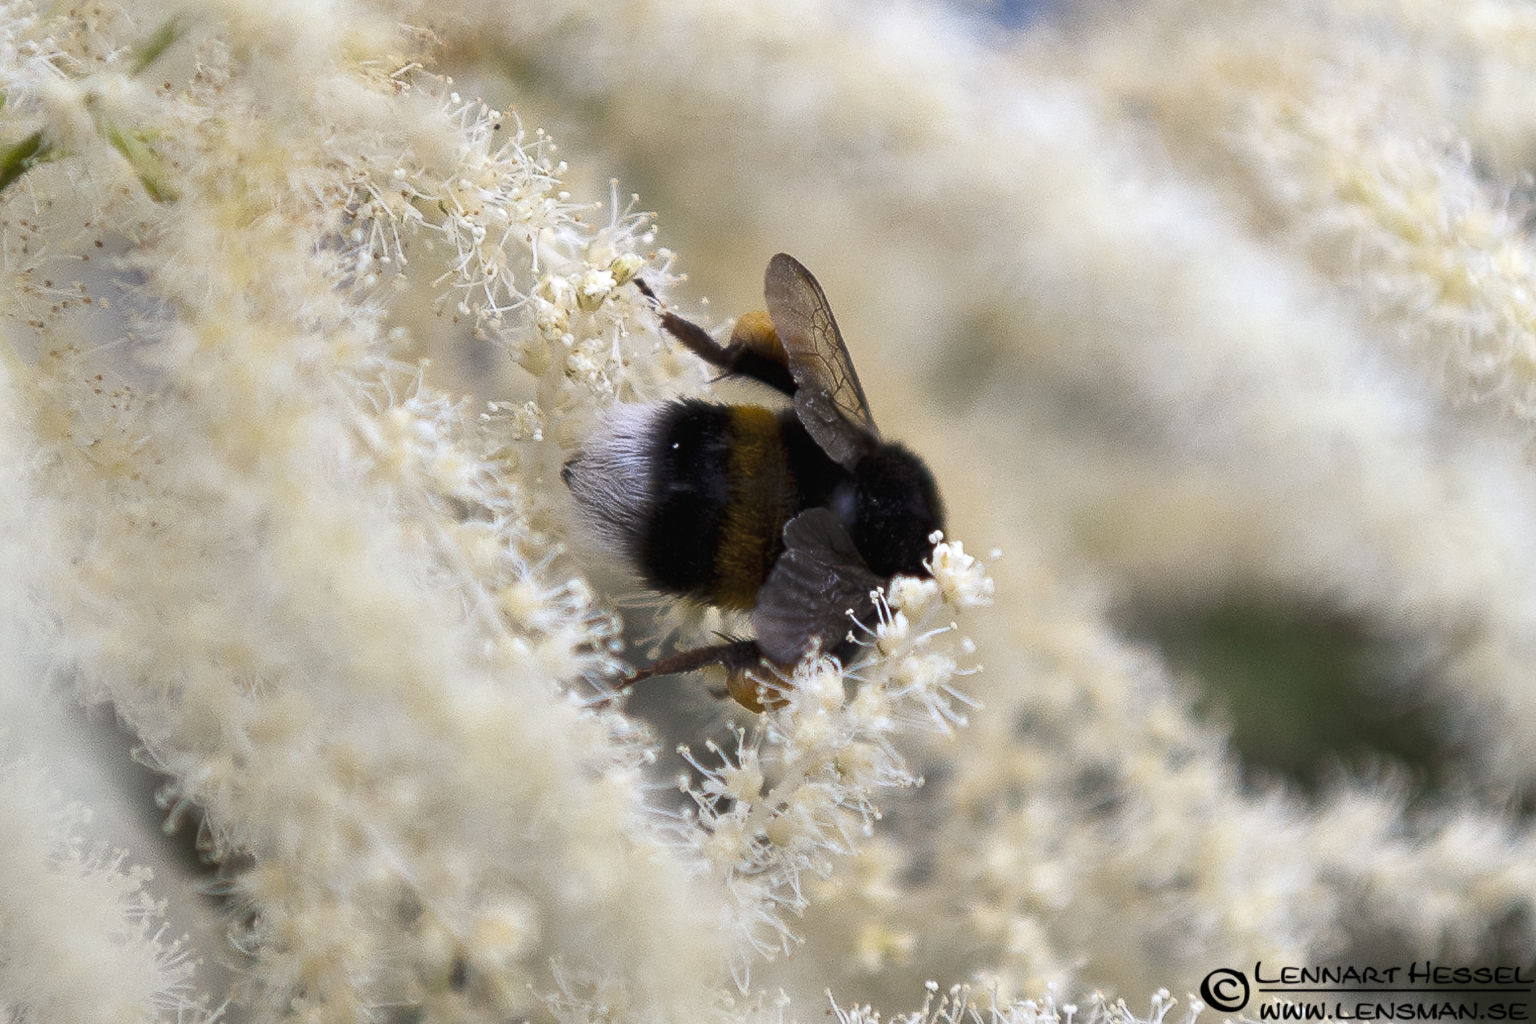 Bumblebee with pollen, photo from Örgryte